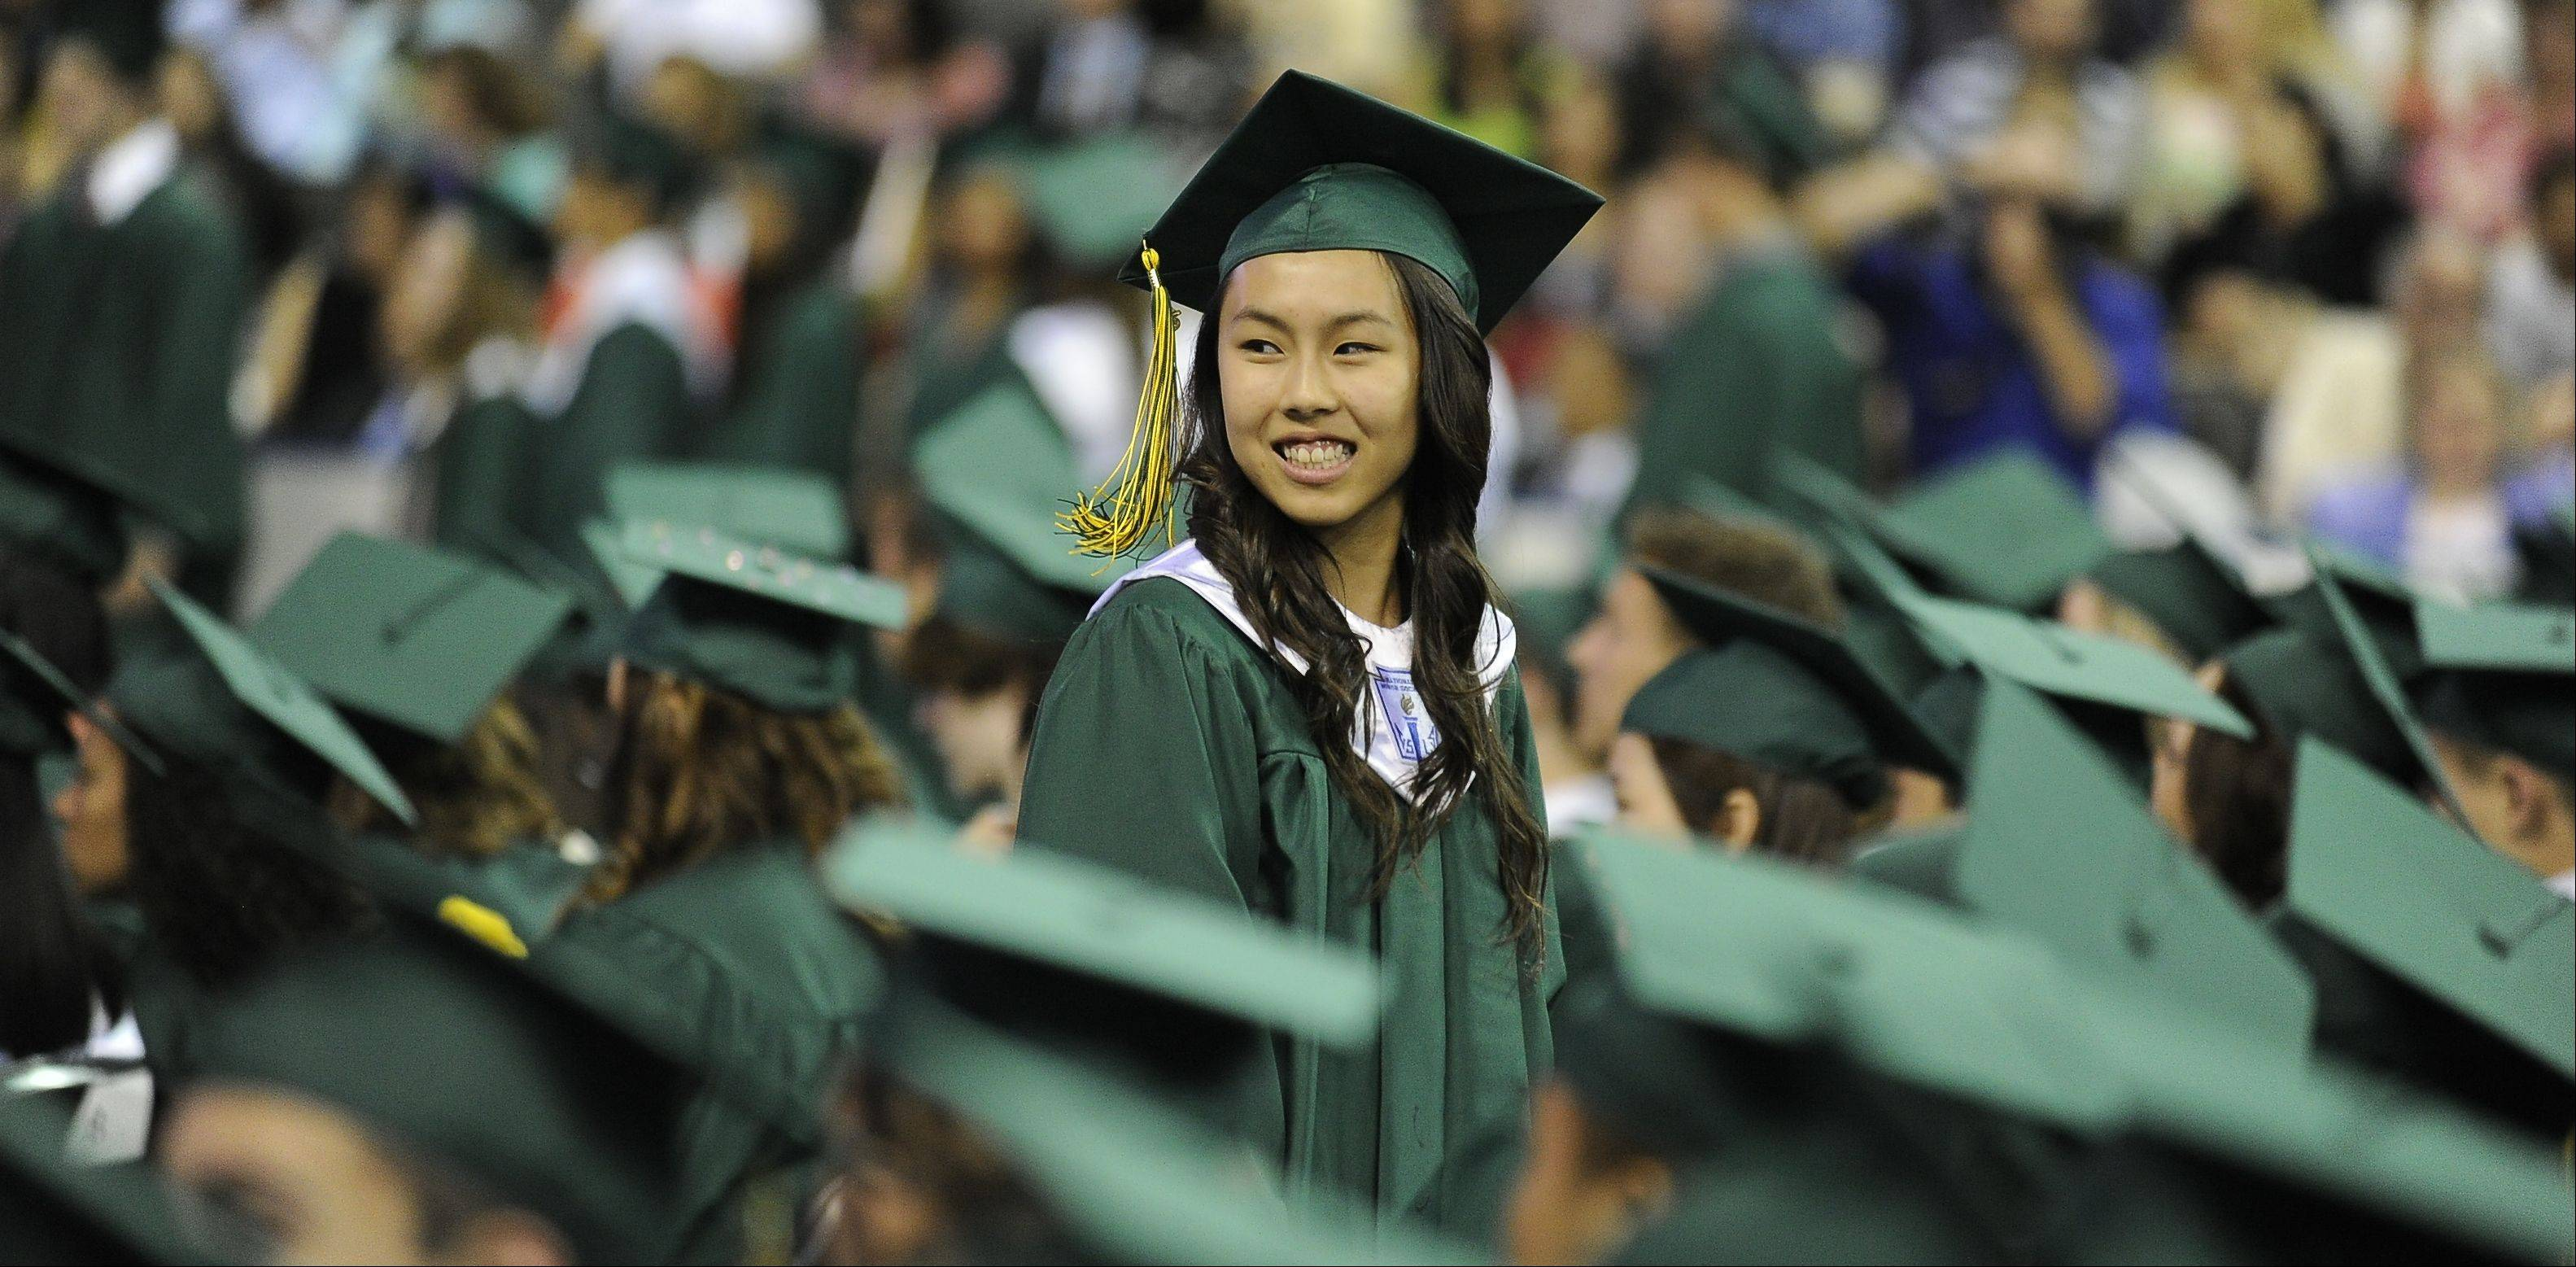 Images from the Stevenson High School graduation on Thursday, June 6 at the Sears Centre in Hoffman Estates.